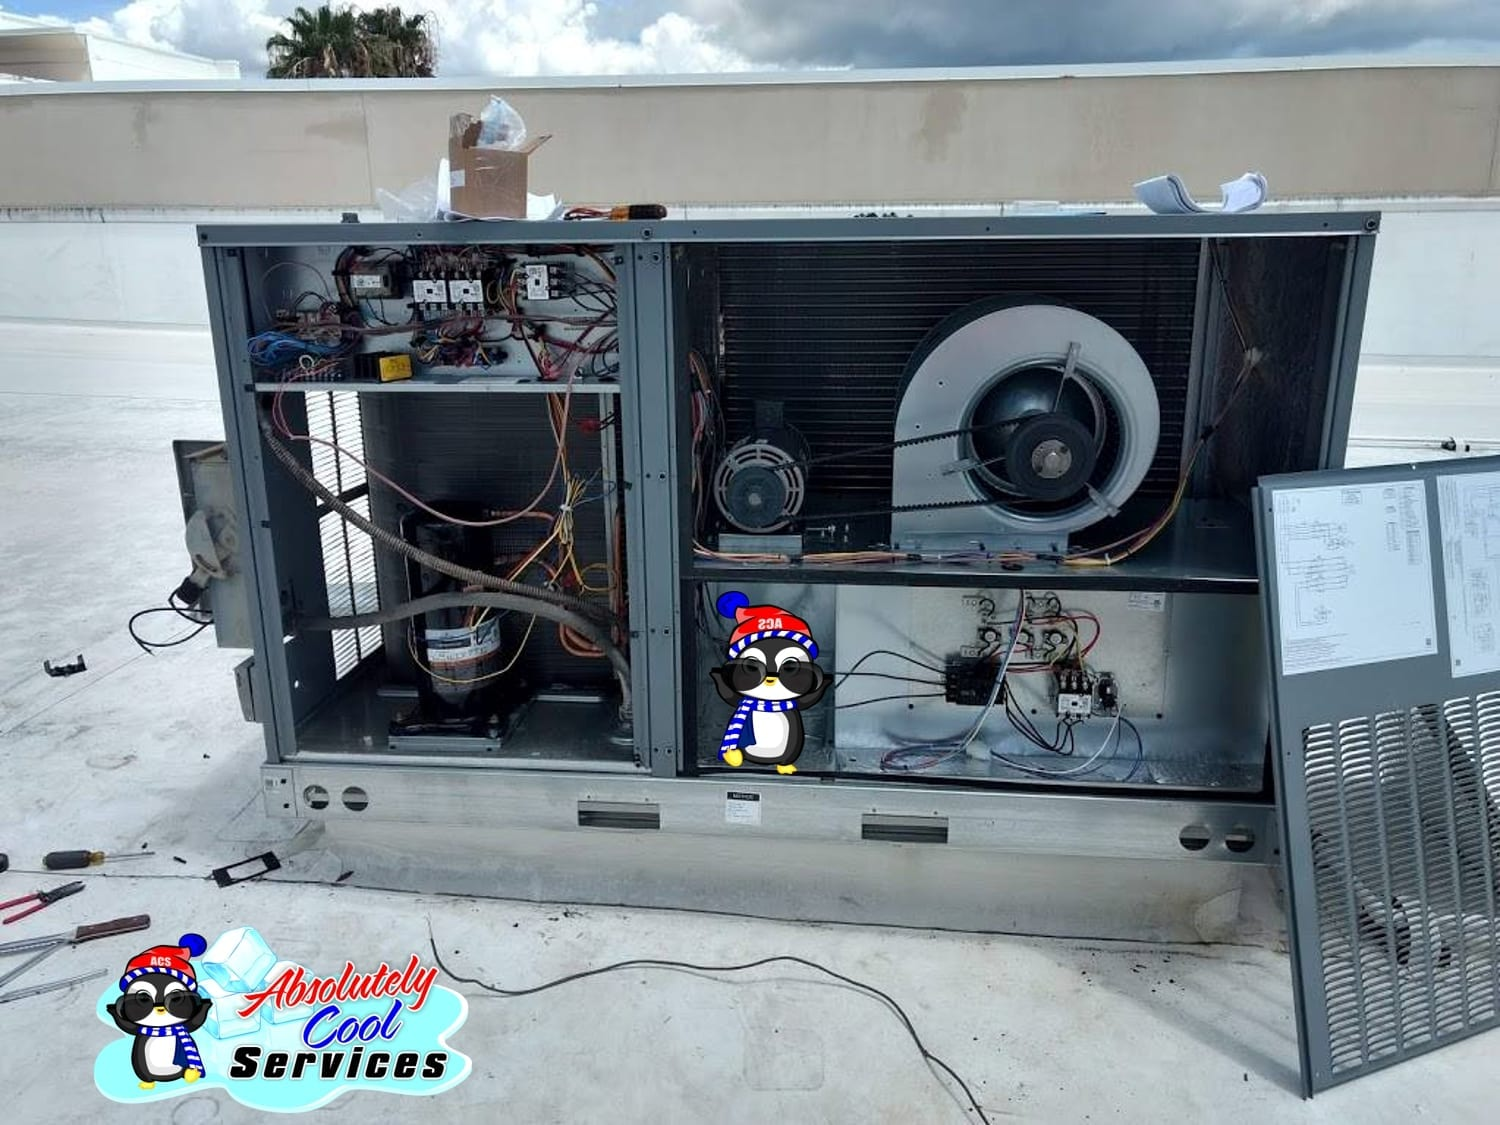 Roof Air Conditioning | Air Conditioning Repair Company near Delray Beach